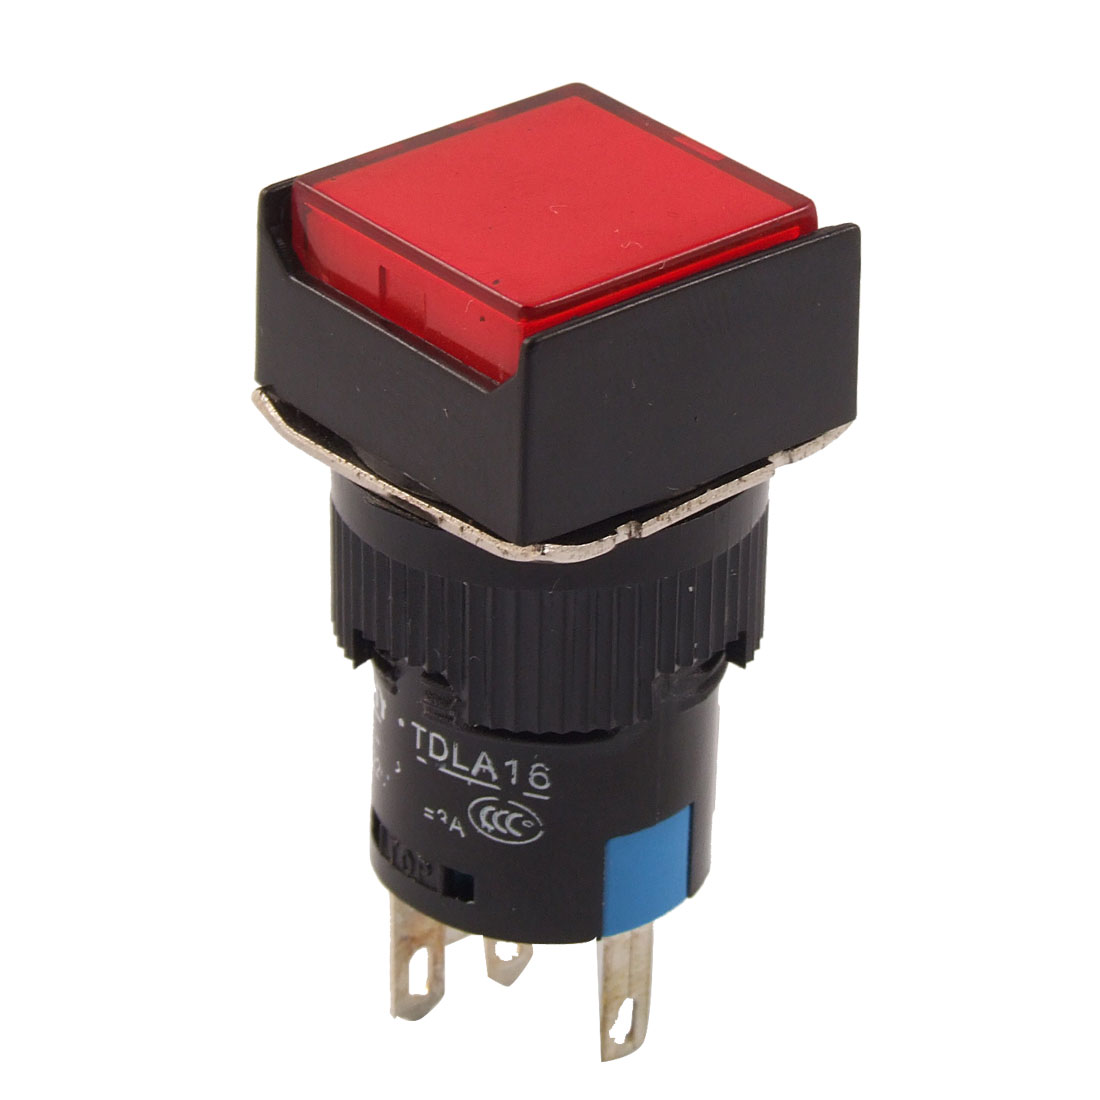 DC 24V Red Neon Light Square Momentary AC 220V 3A Pushbutton Switch